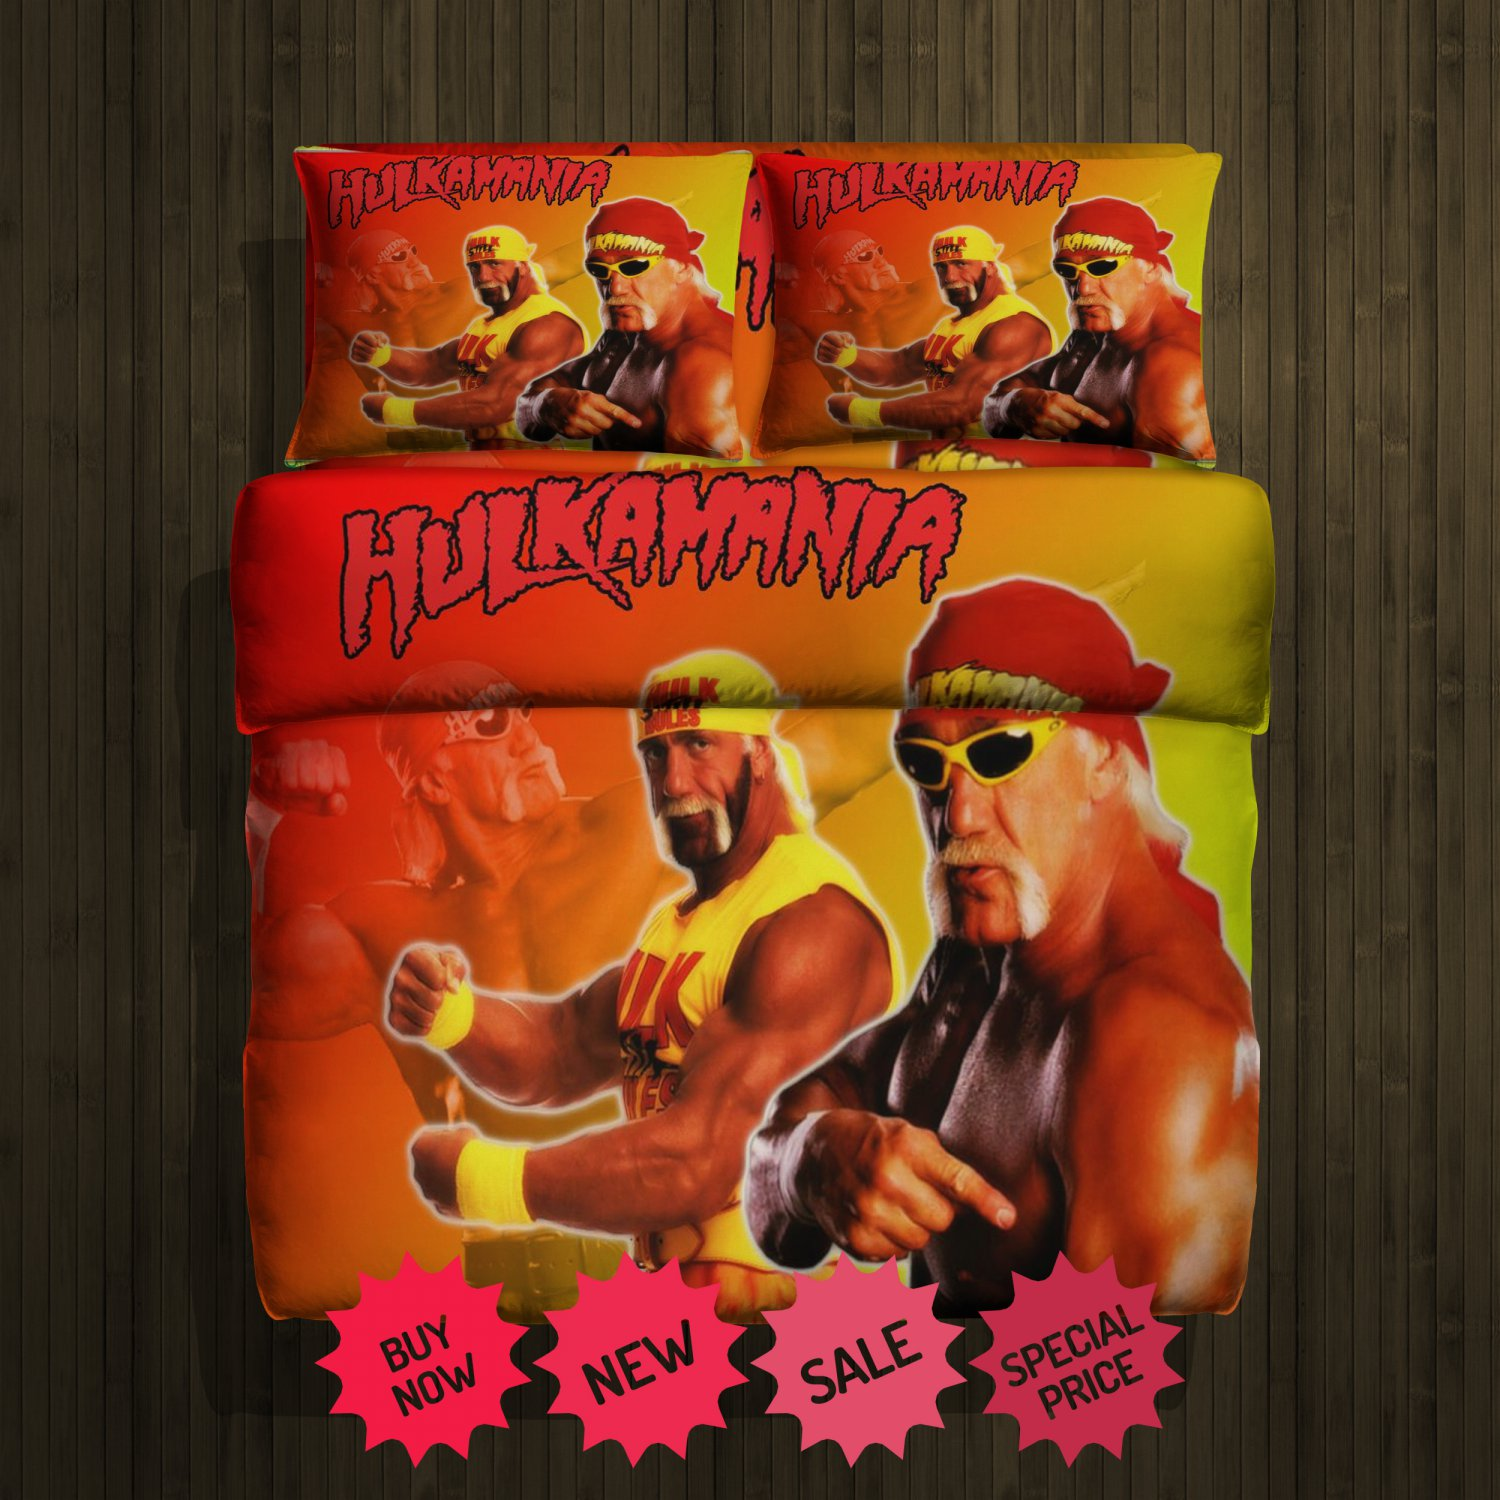 Hulk Hogan Fleece Blanket Large & 2 Pillow Cases #84783288,84783289(2)